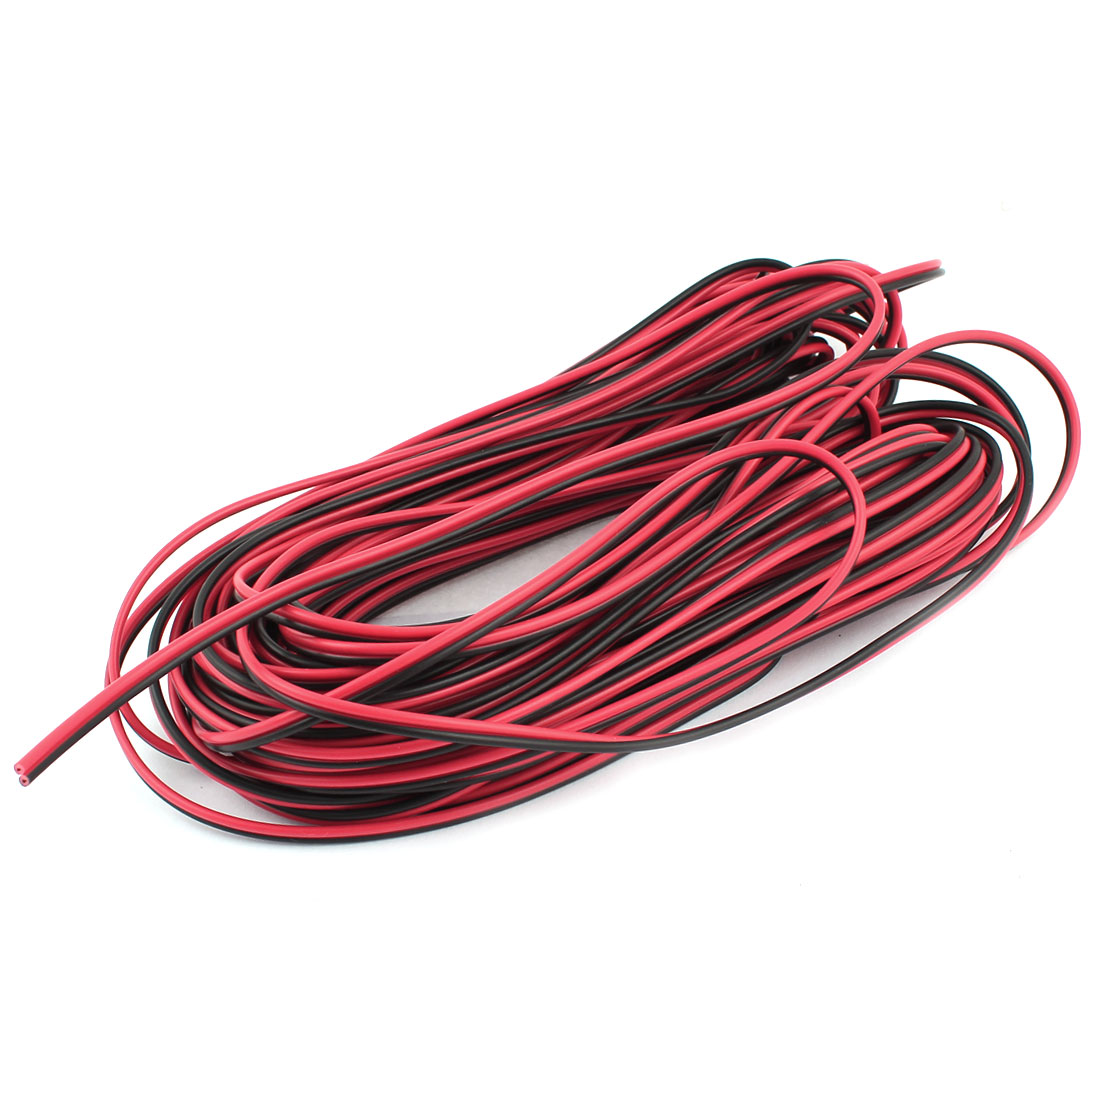 20M 33Ft 33Feet Electrical Power Cable Wire Balck Red